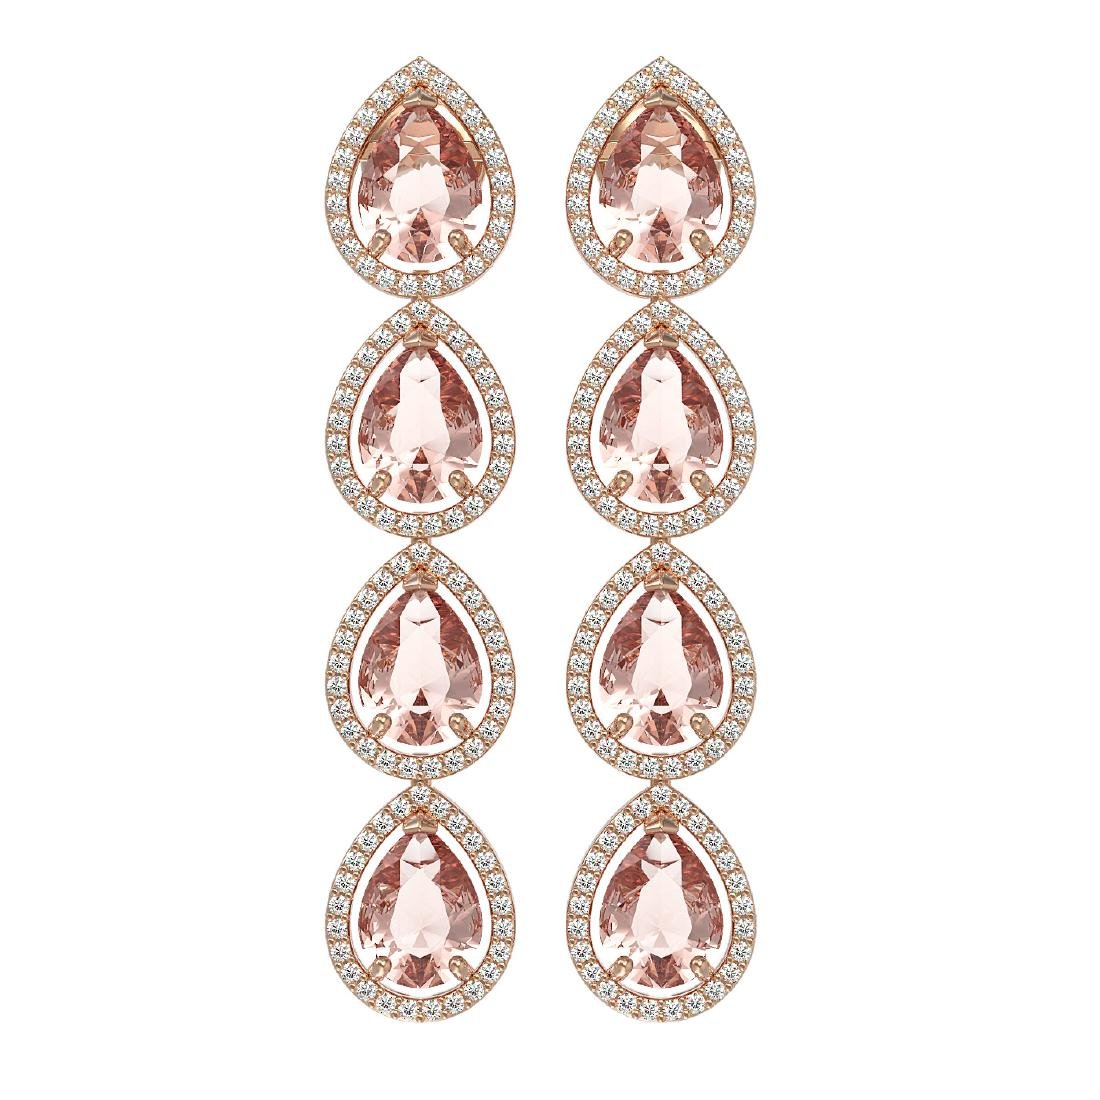 10.4 CTW Morganite & Diamond Halo Earrings 10K Rose